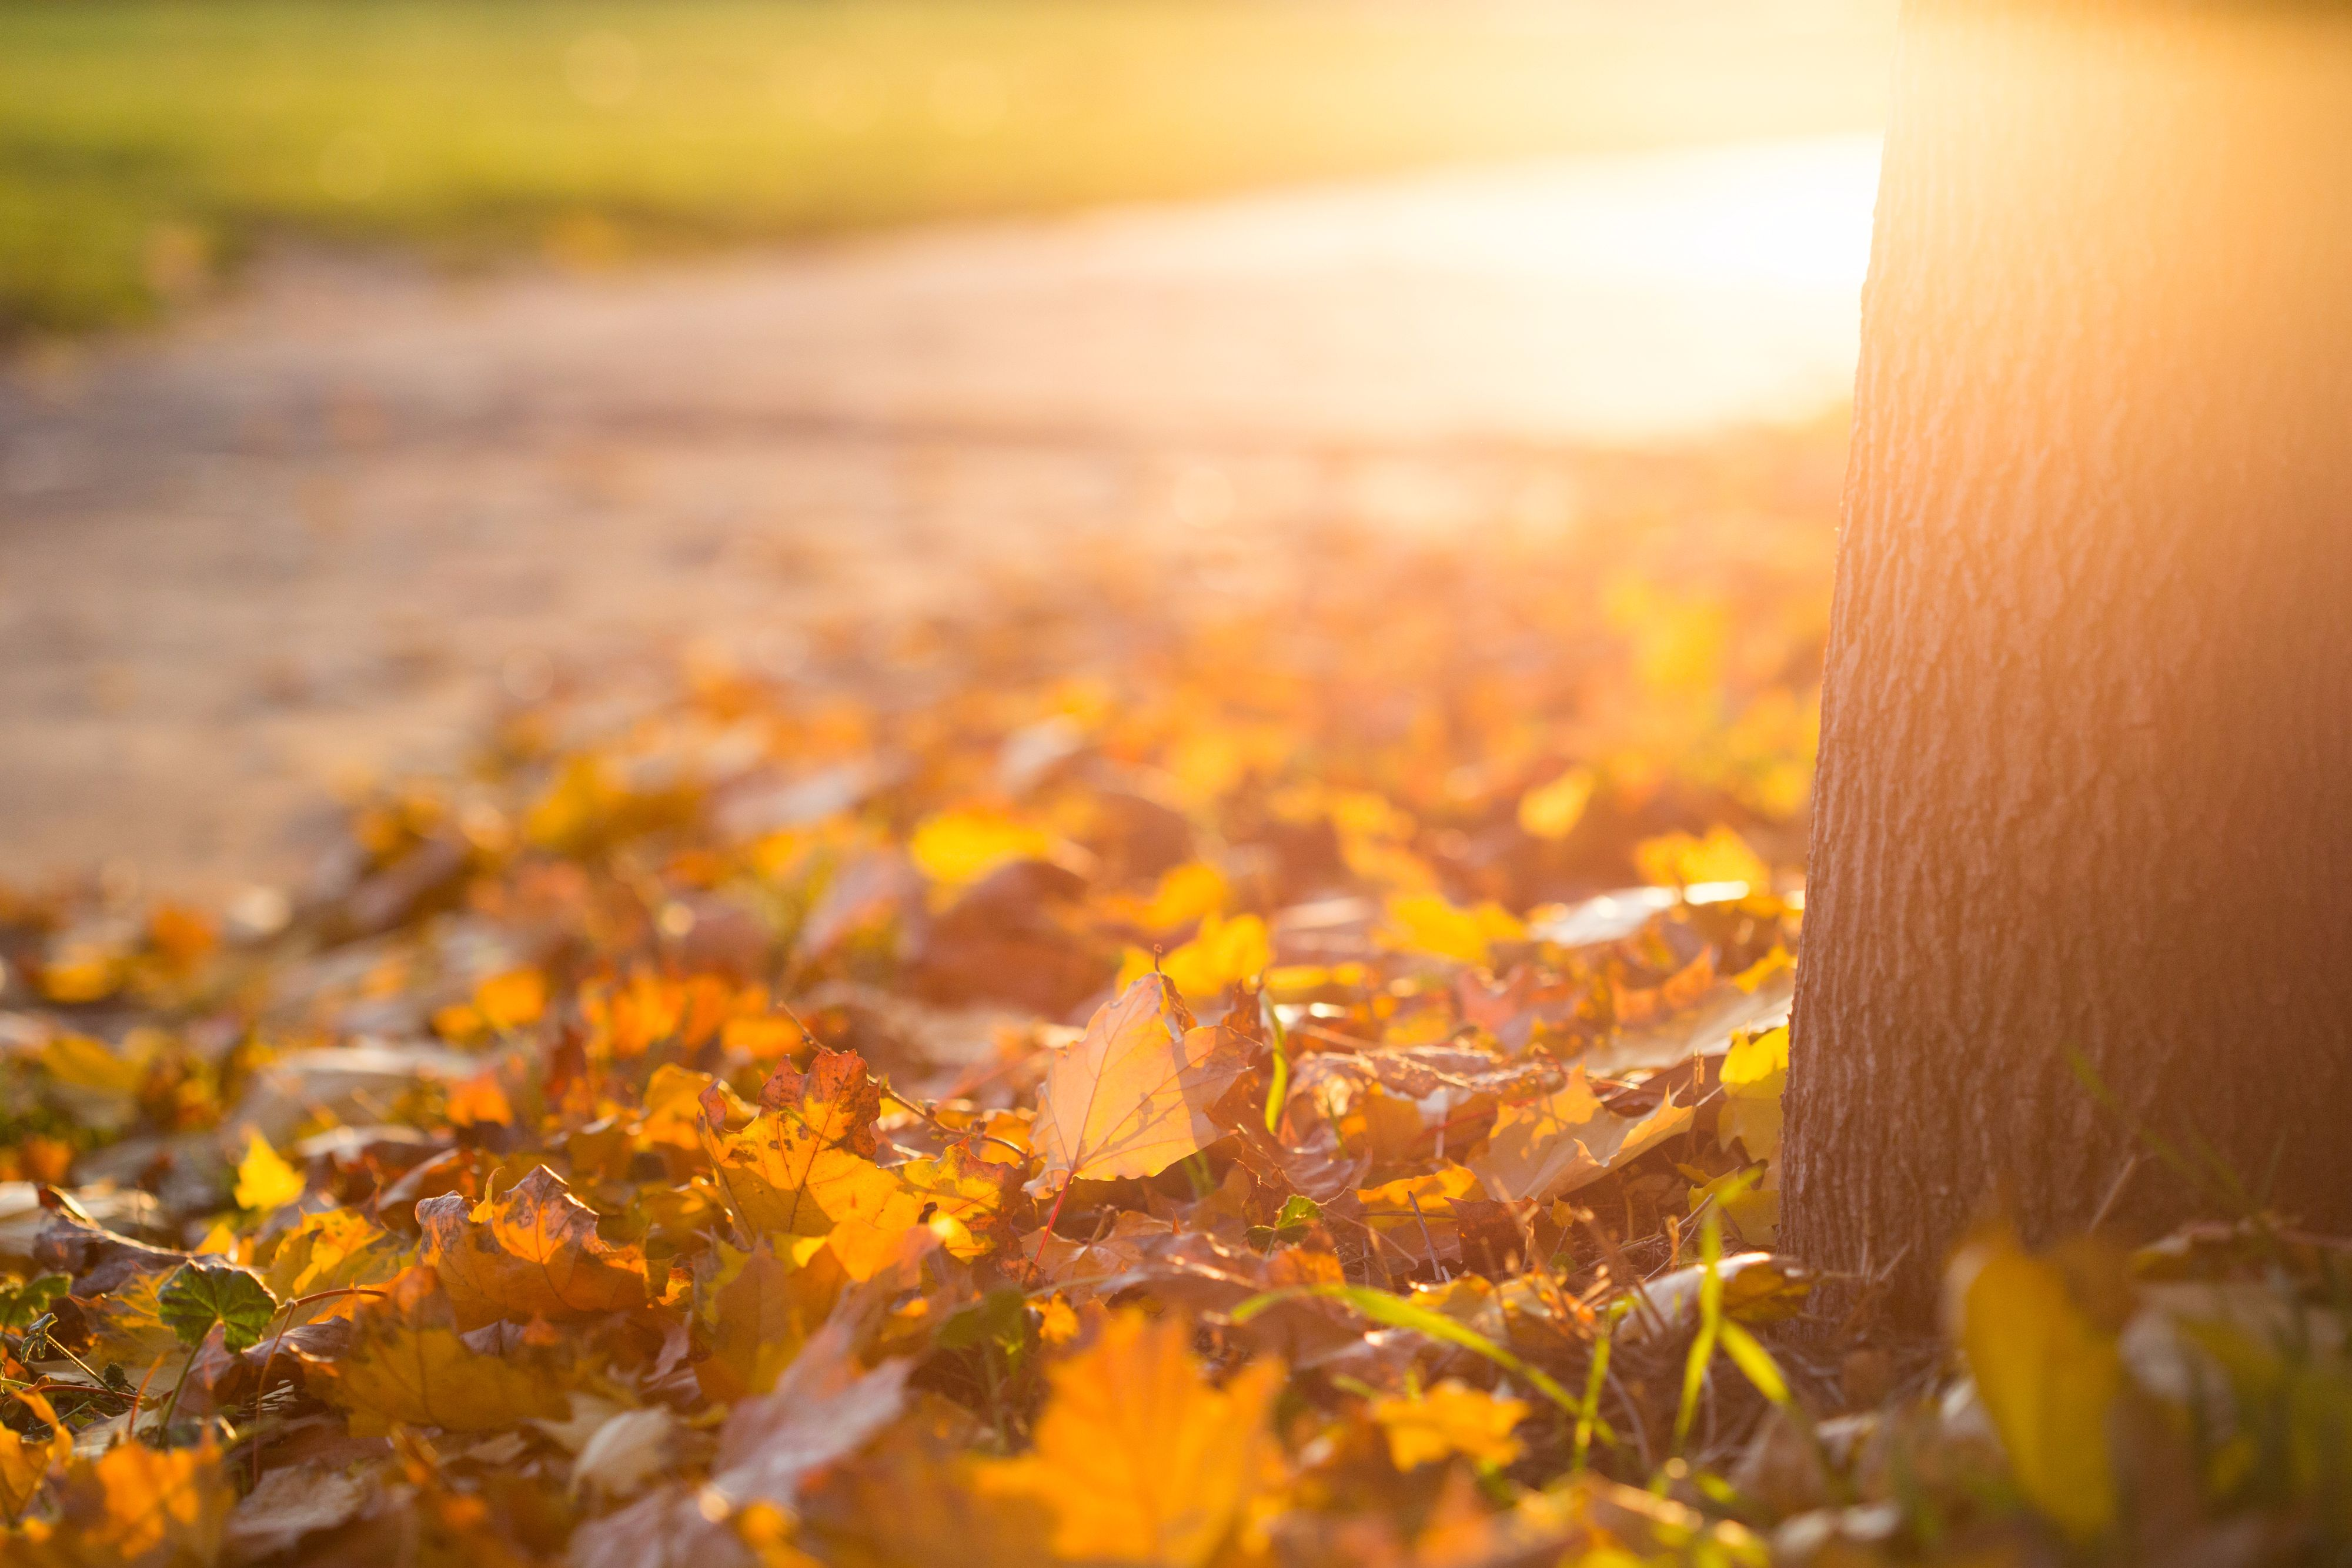 fall-autumn-leaves-on-the-ground-picjumbo-com-compressed